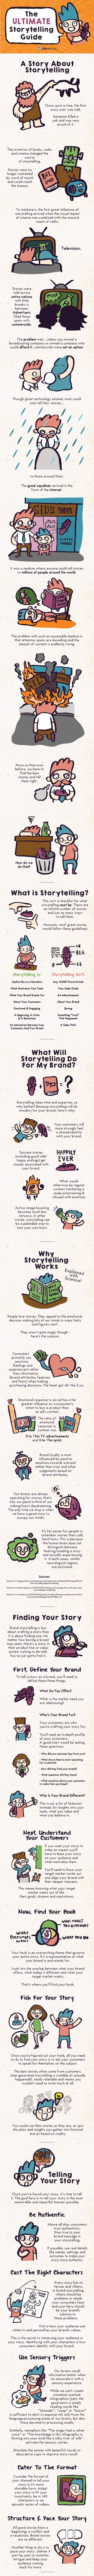 The Ultimate Guide to Great Storytelling [Infographic], via @HubSpot